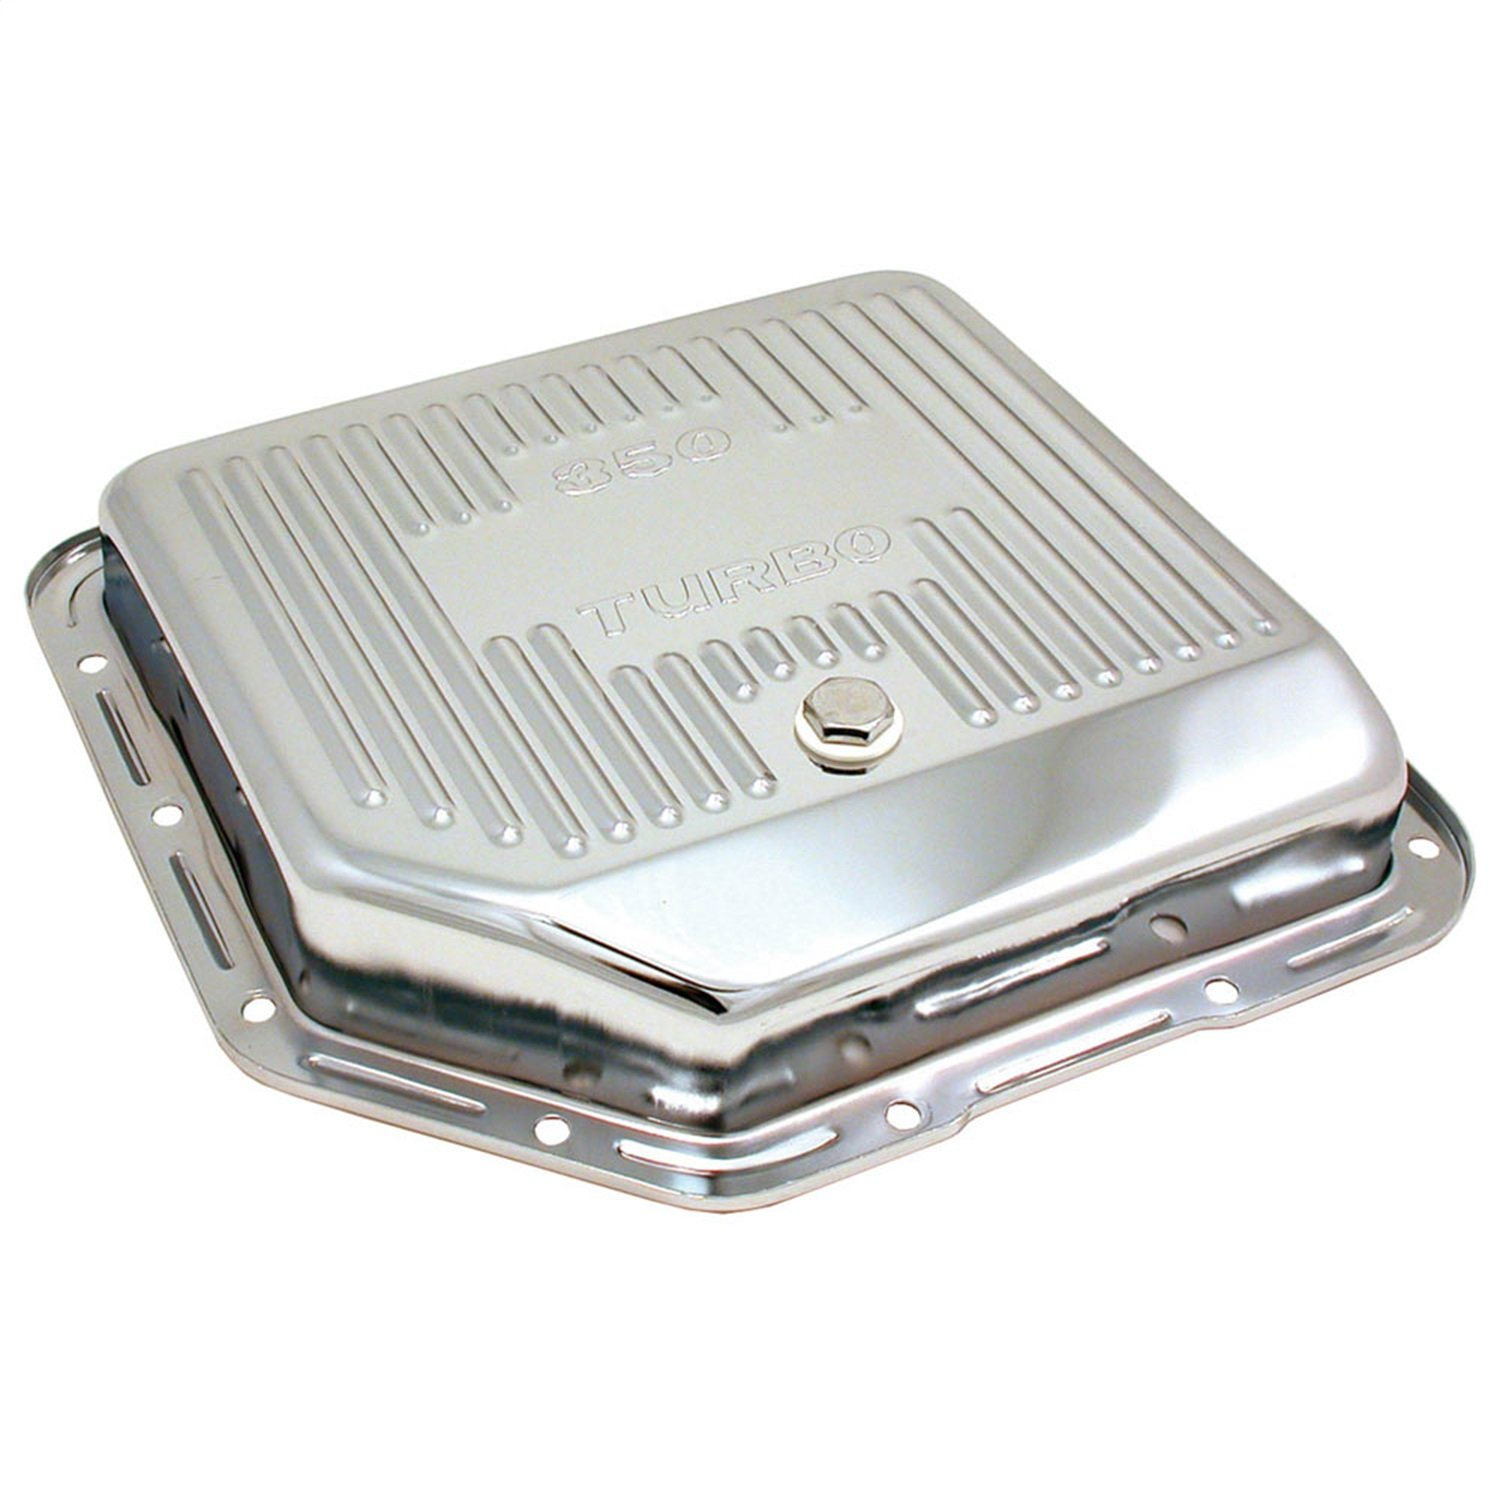 Spectre 5450 Chrome Transmission Pan for Turbo 350